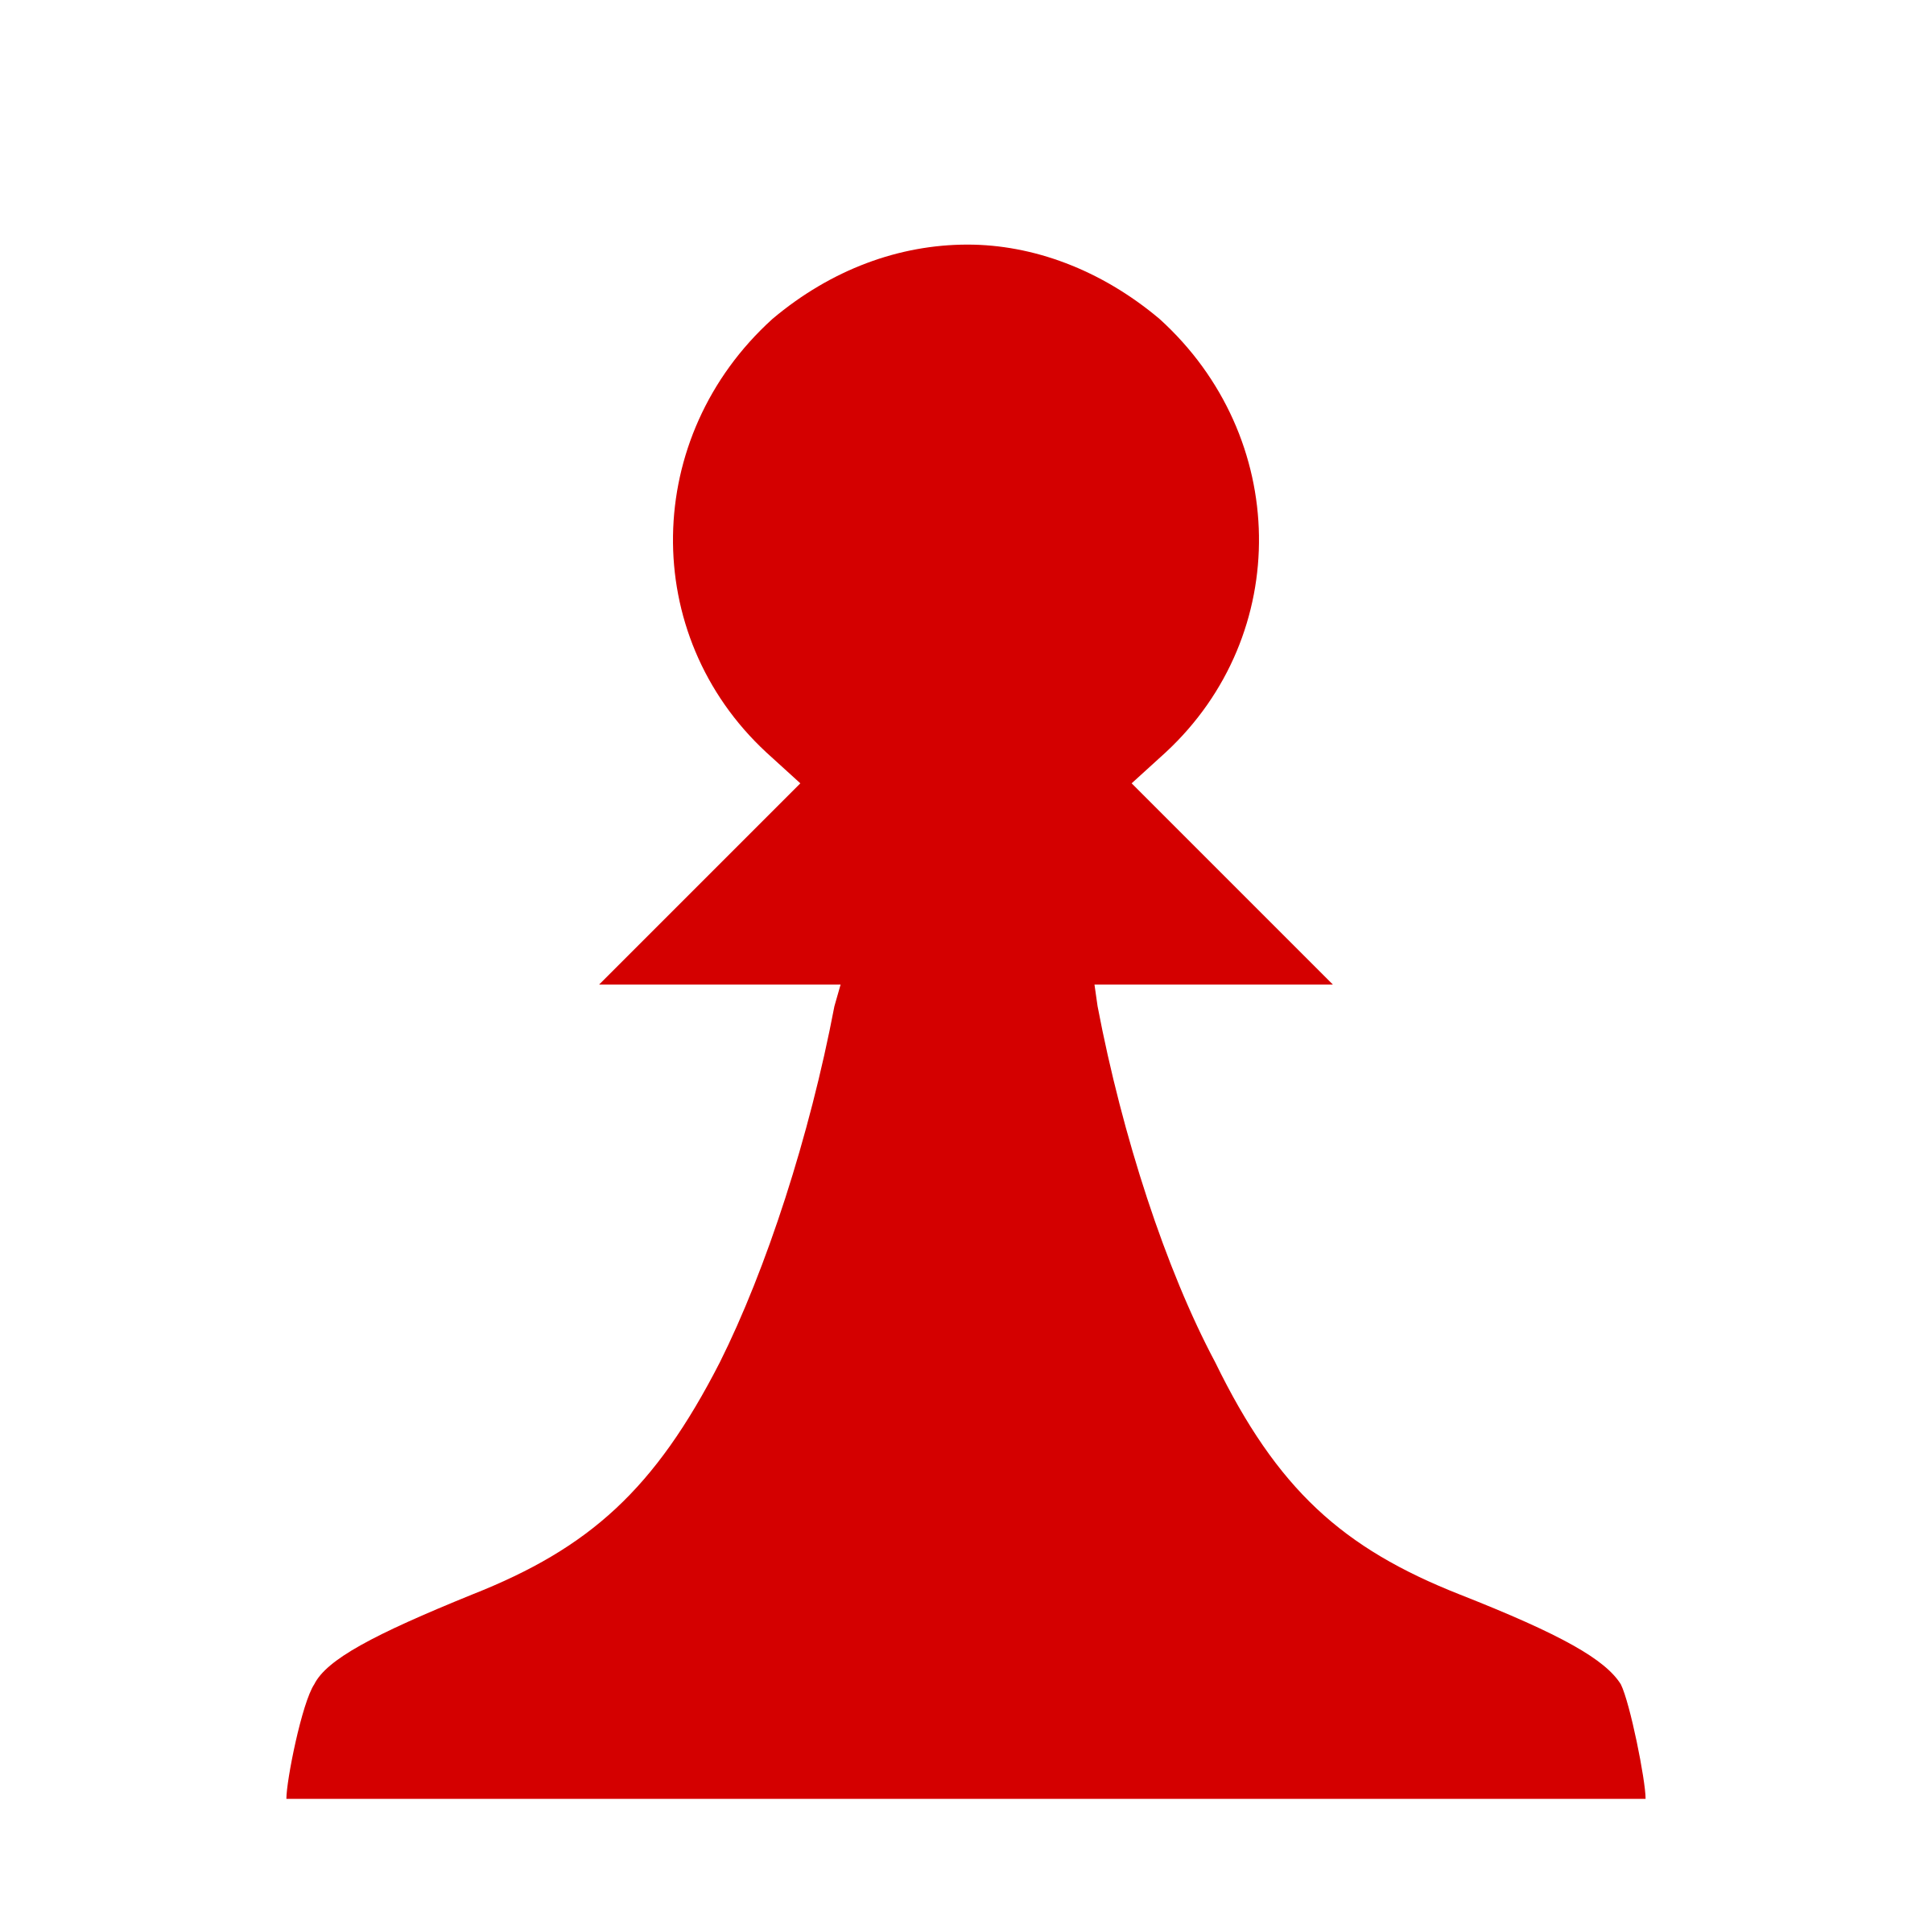 Clipart pen silhouette. Chess piece red pawn